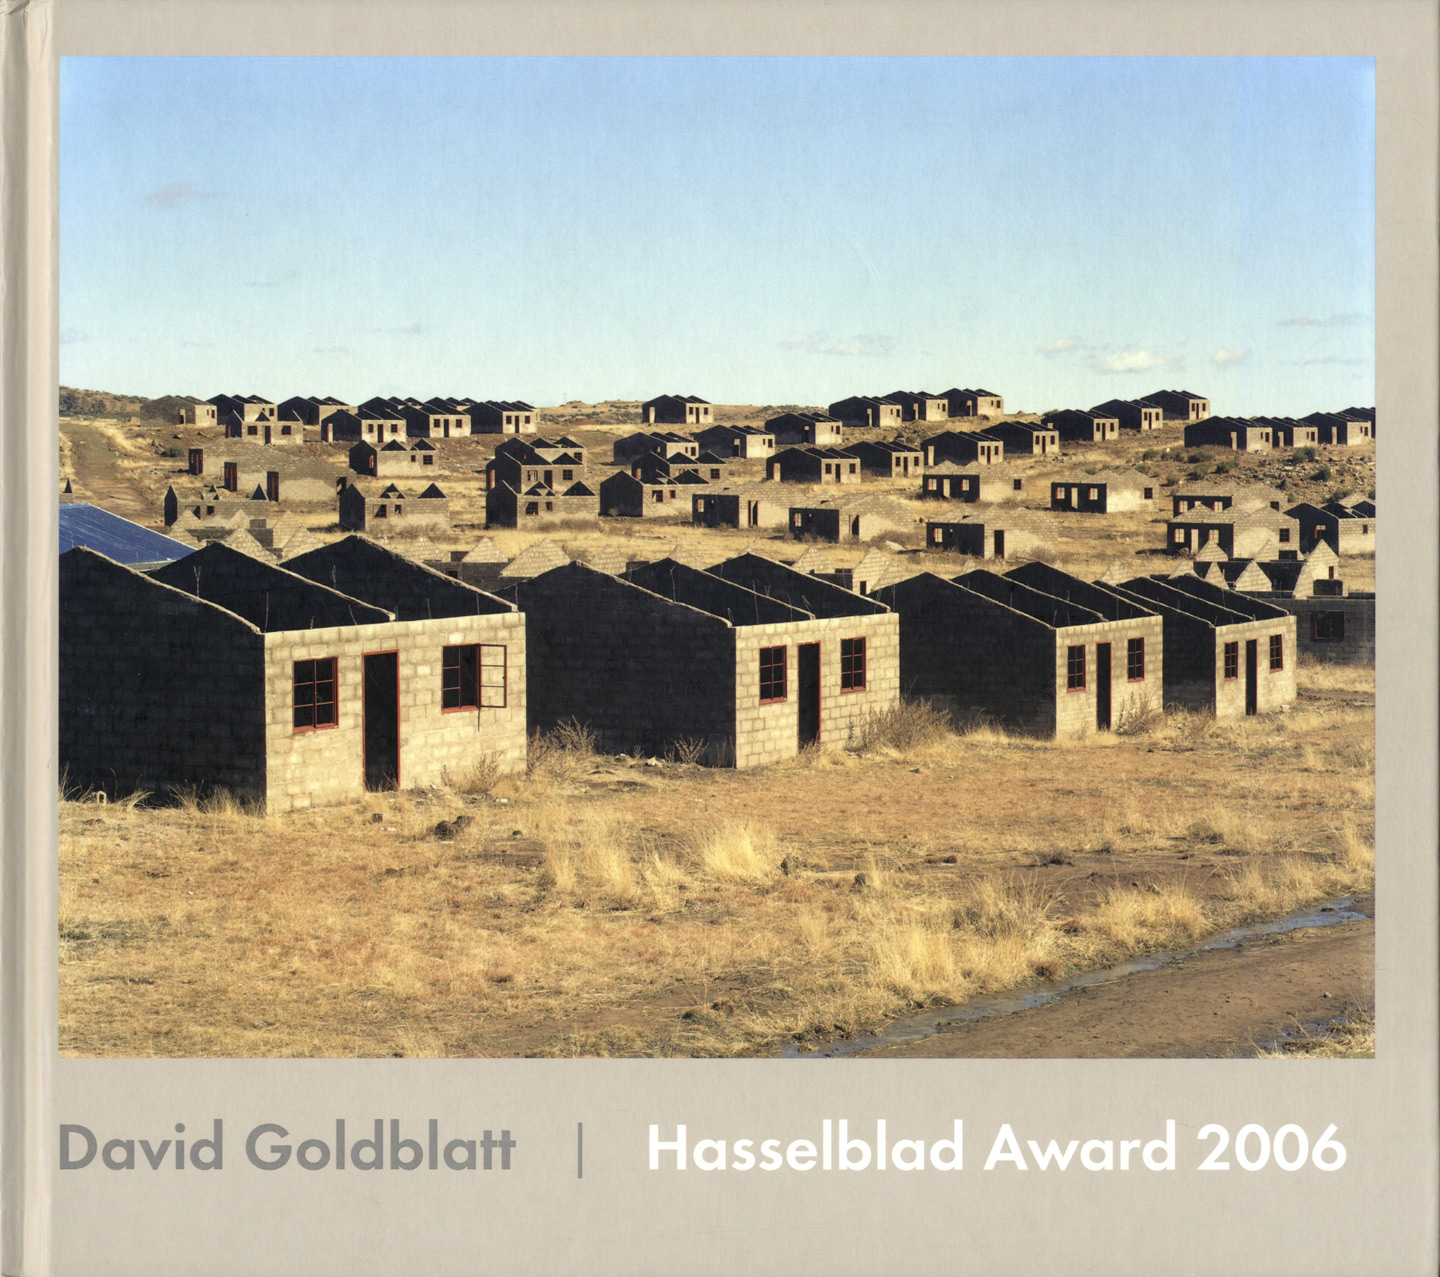 David Goldblatt: Photographs (Hasselblad Award 2006)